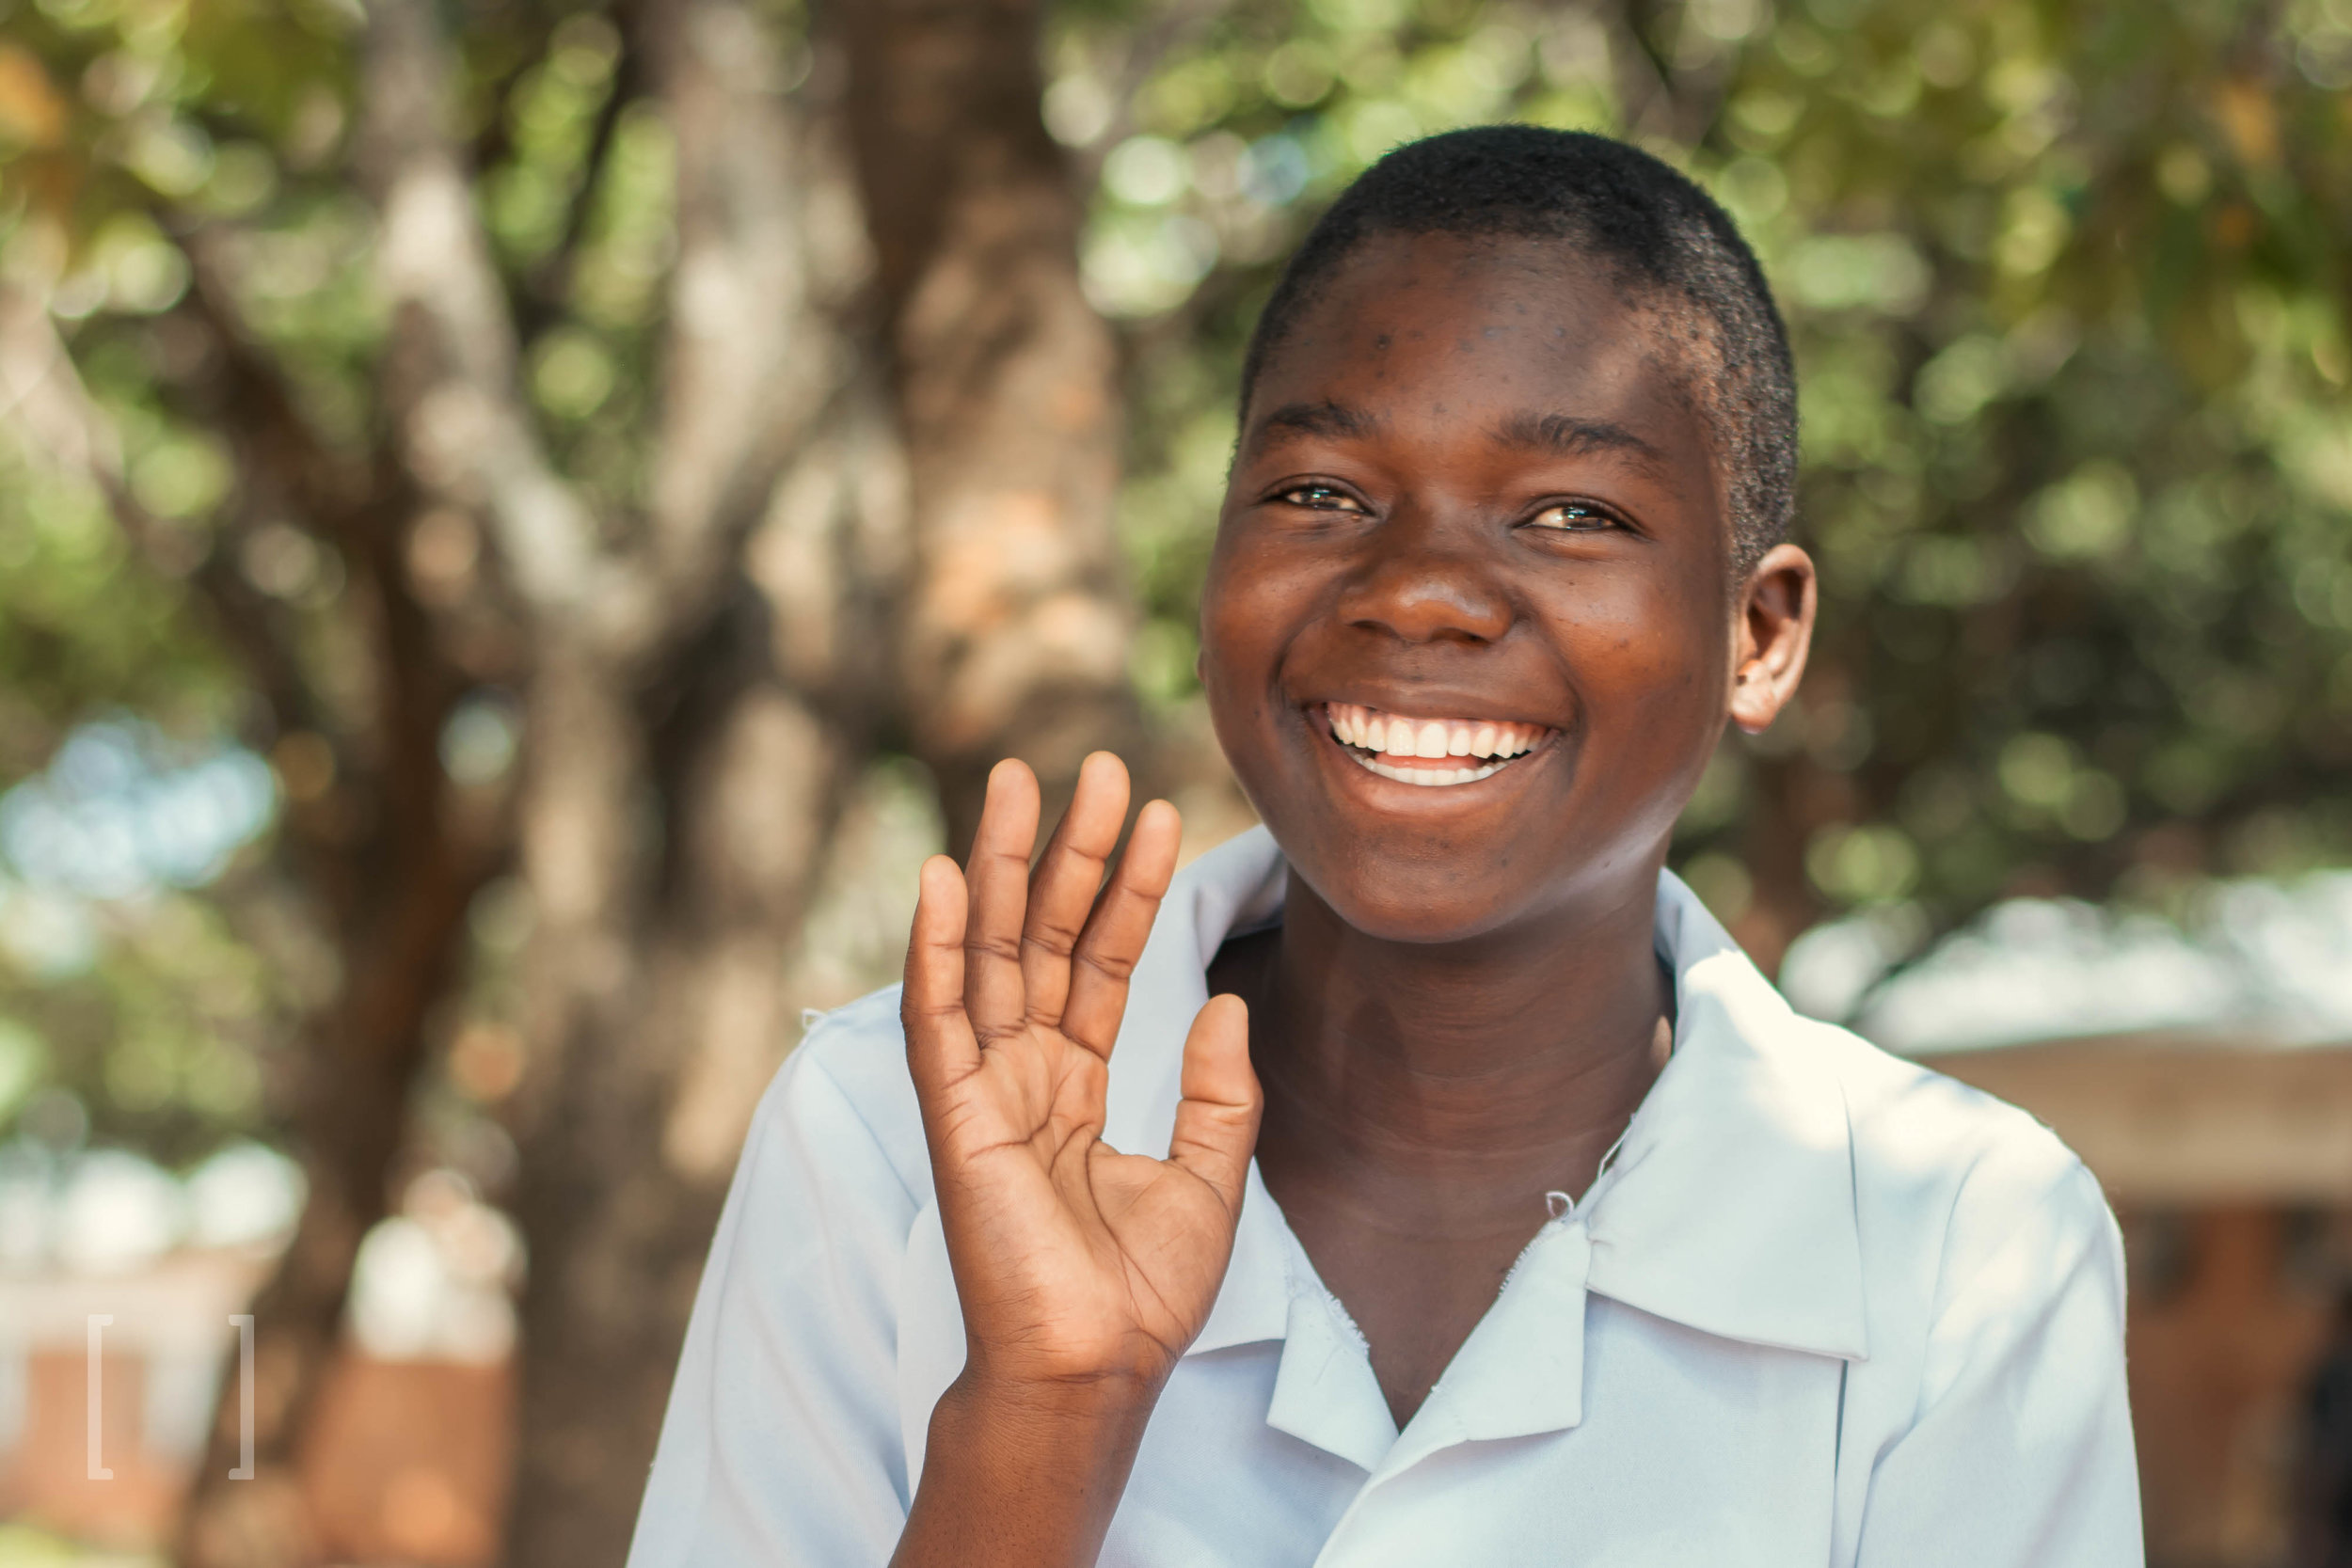 Sofina - Sofina was born on 24 January 2002. Her father died and her mother suffers from intellectual disabilities. She works hard in school and is happy to have a community of support at Home of Hope. Show her some love and become Sofina's sponsor!